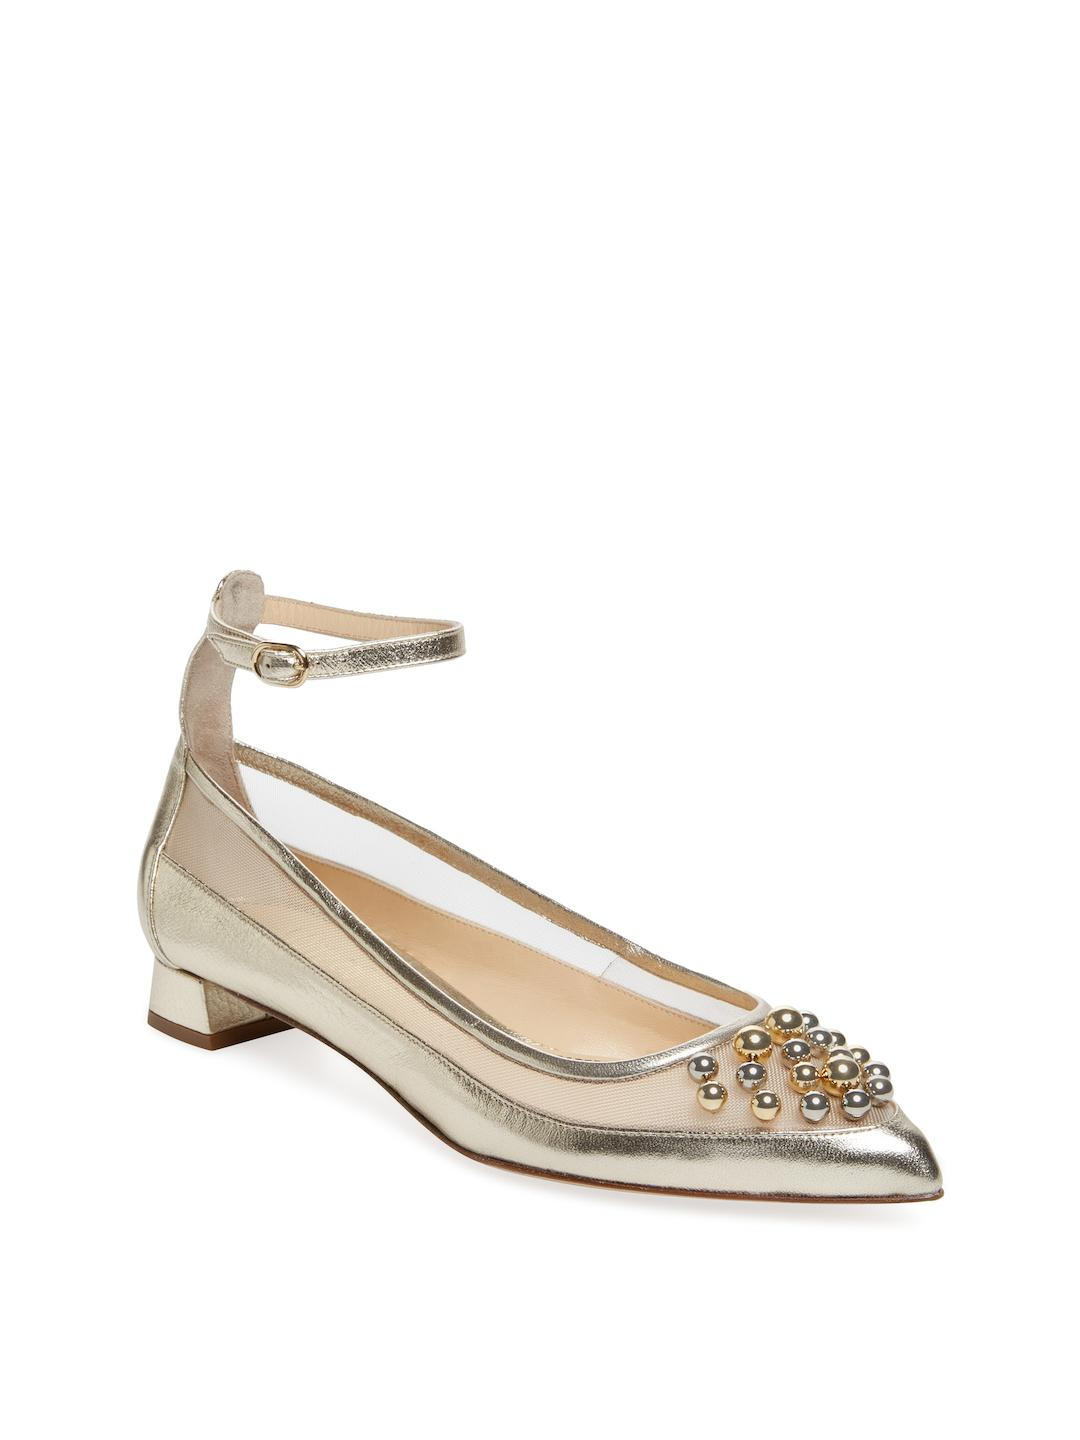 sale official site order Jerome C. Rousseau Embellished Pointed-Toe Flats clearance very cheap discount exclusive discount low cost VvcAeGfk